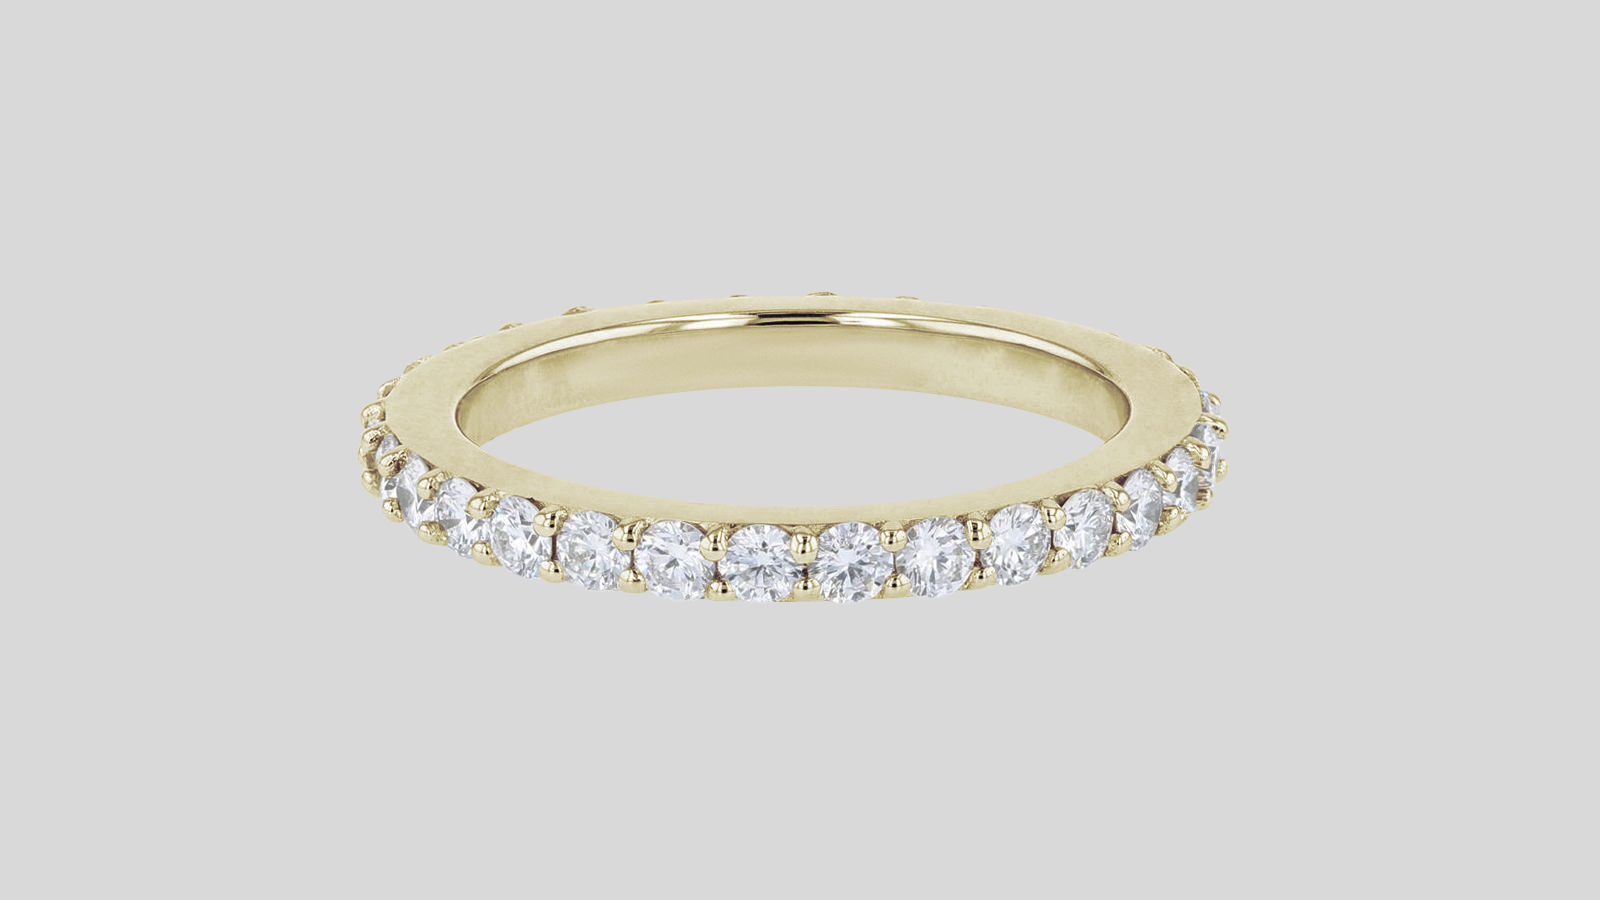 The Lab Grown One Carat Diamond Eternity Band Ring